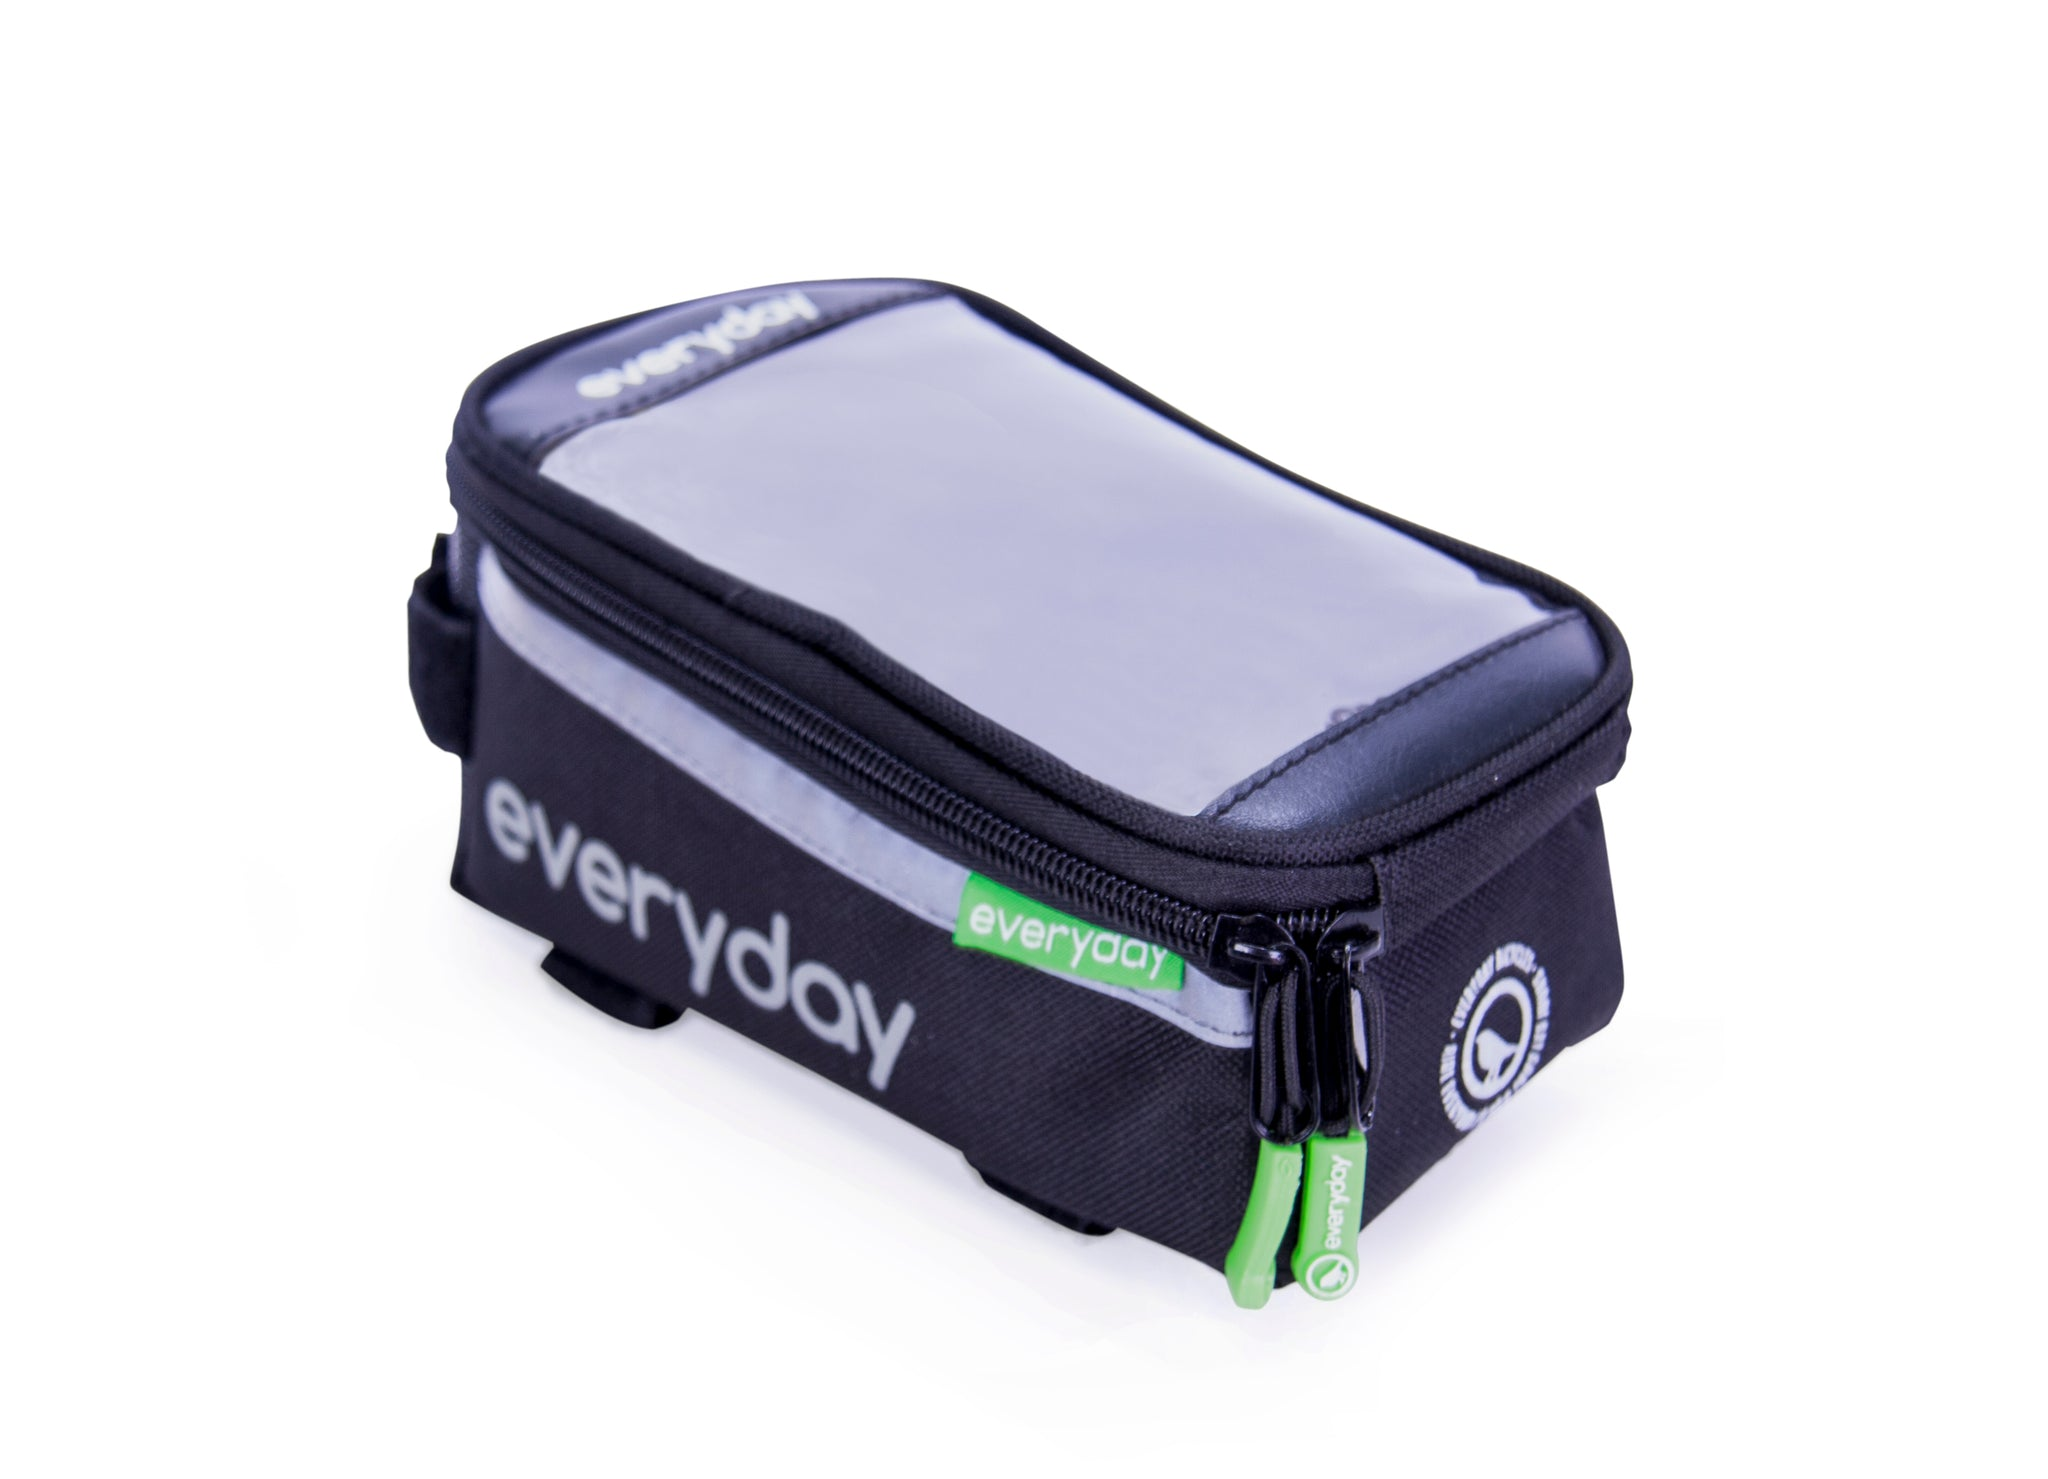 Smartphone Travel Stem Bag (For Larger Sized Phones) SOLD OUT